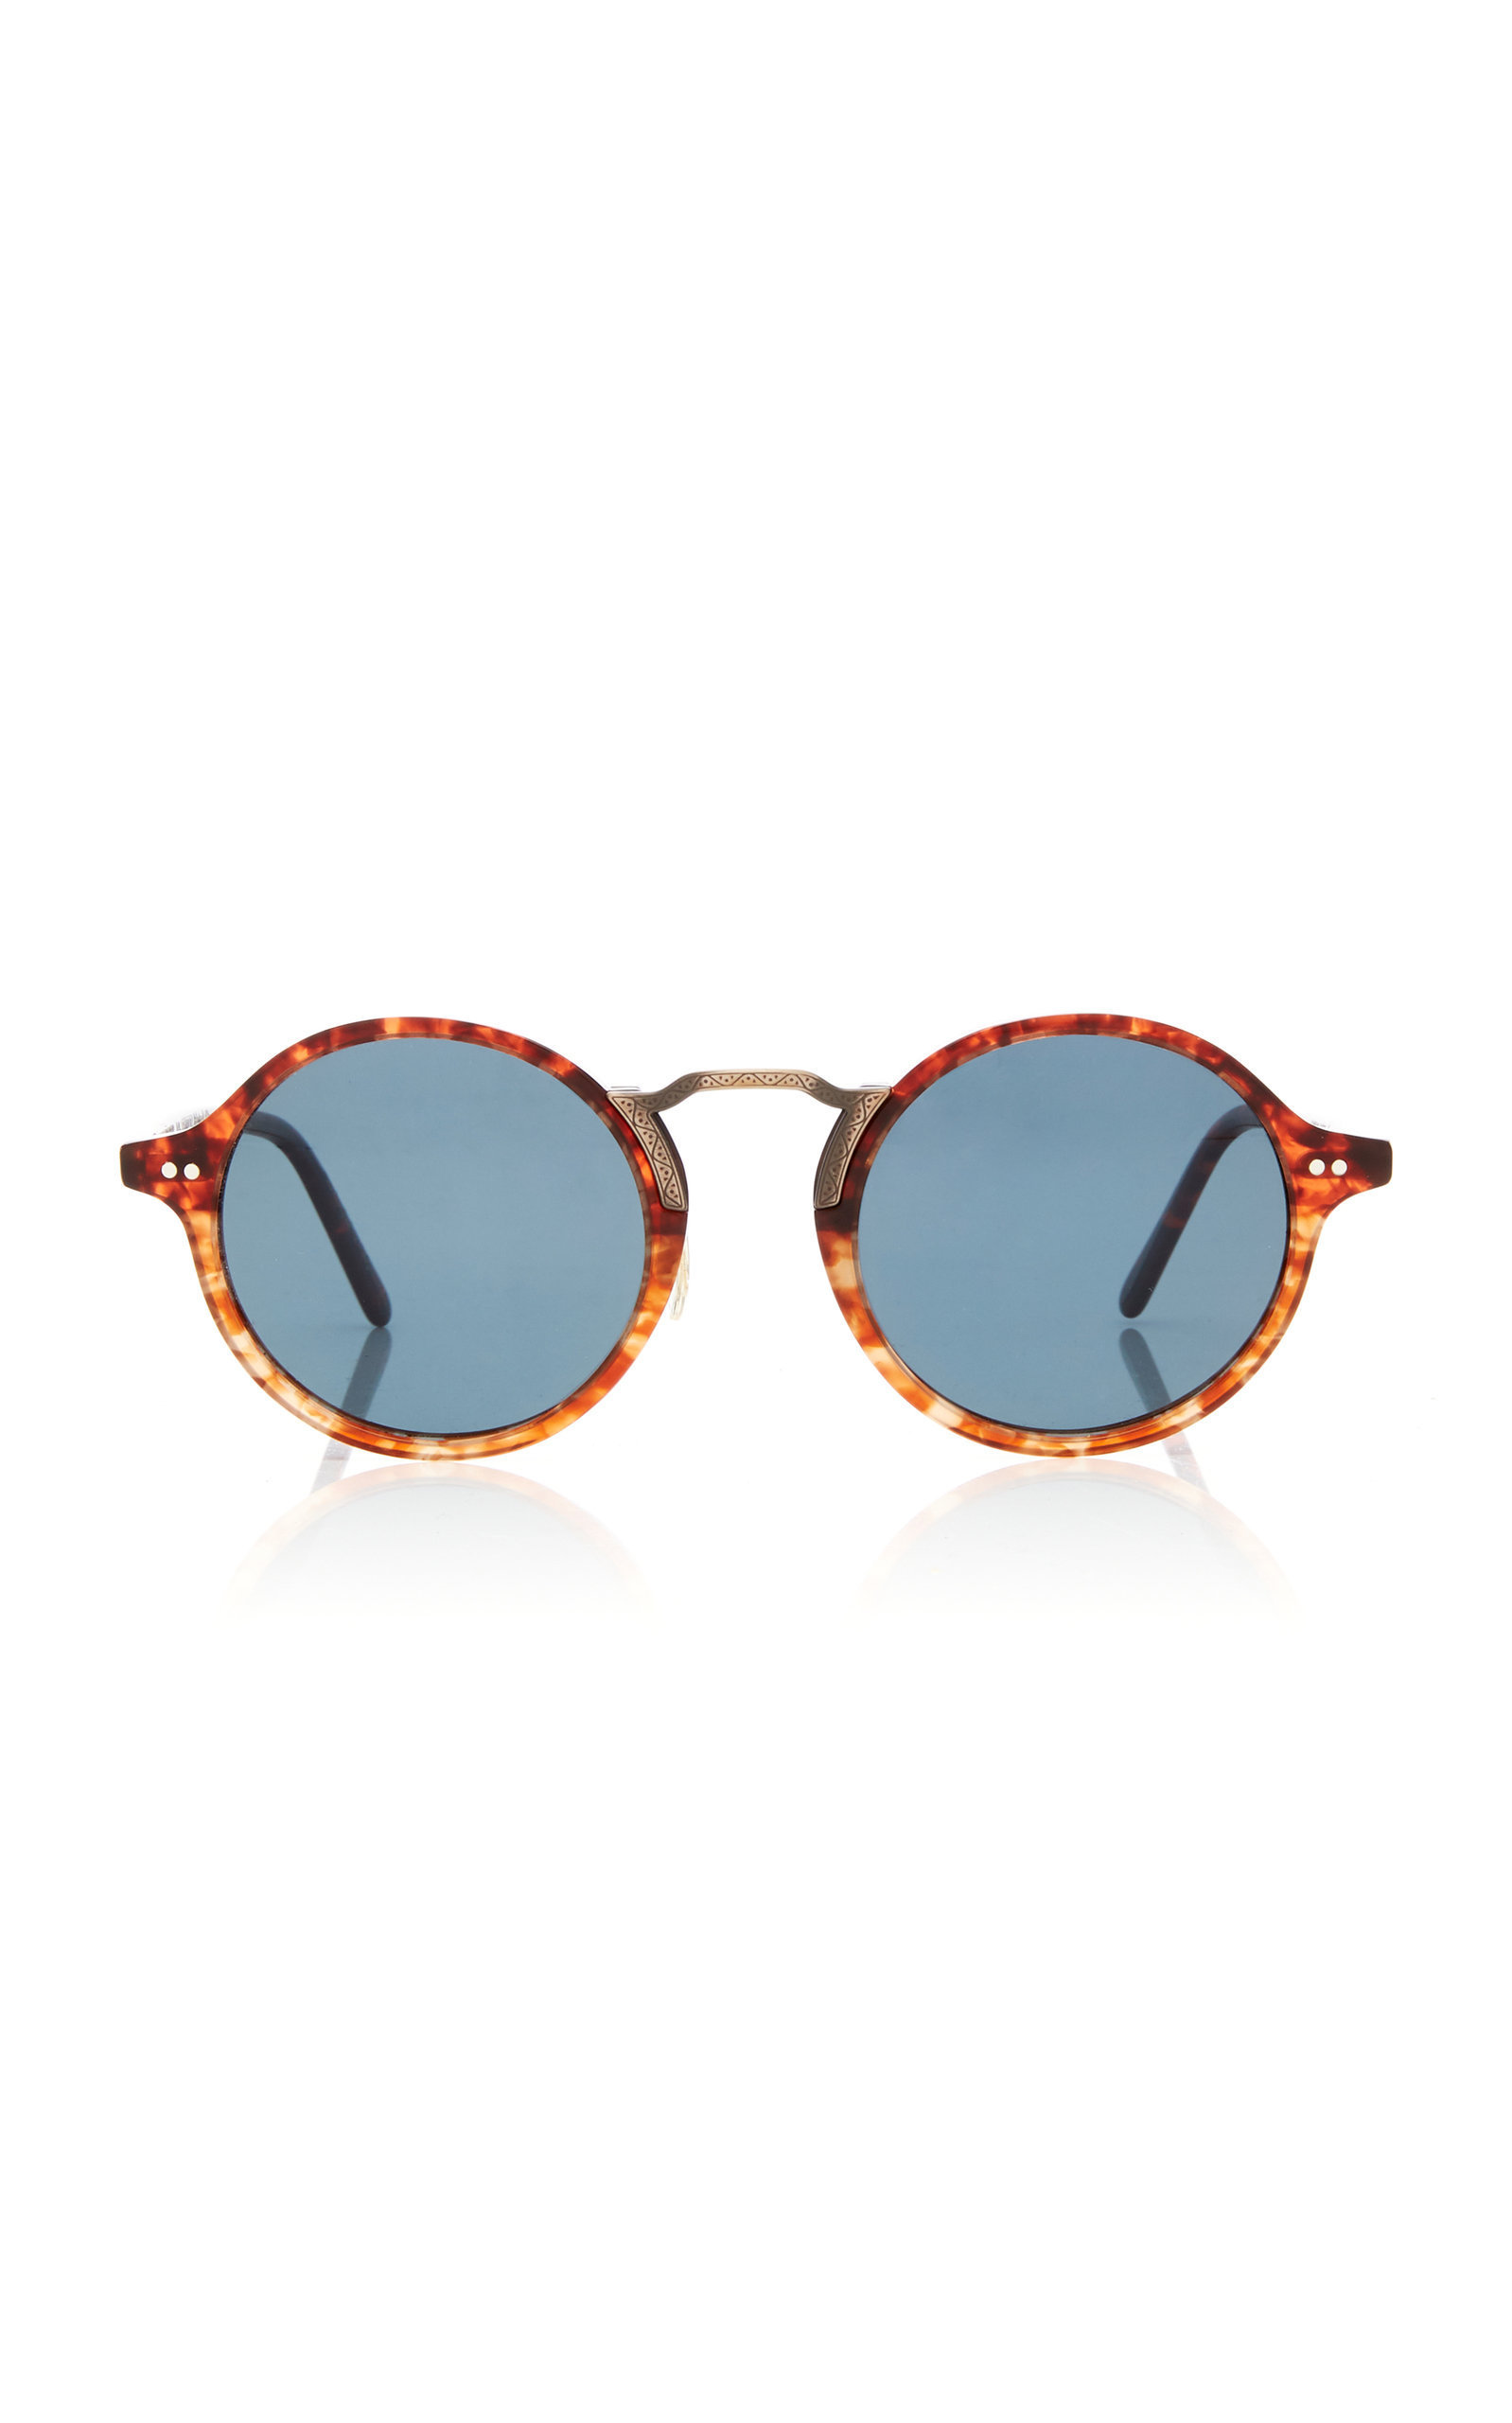 0d4bf16065bdd Oliver Peoples Kosa Round-Frame Acetate Sunglasses In Blue